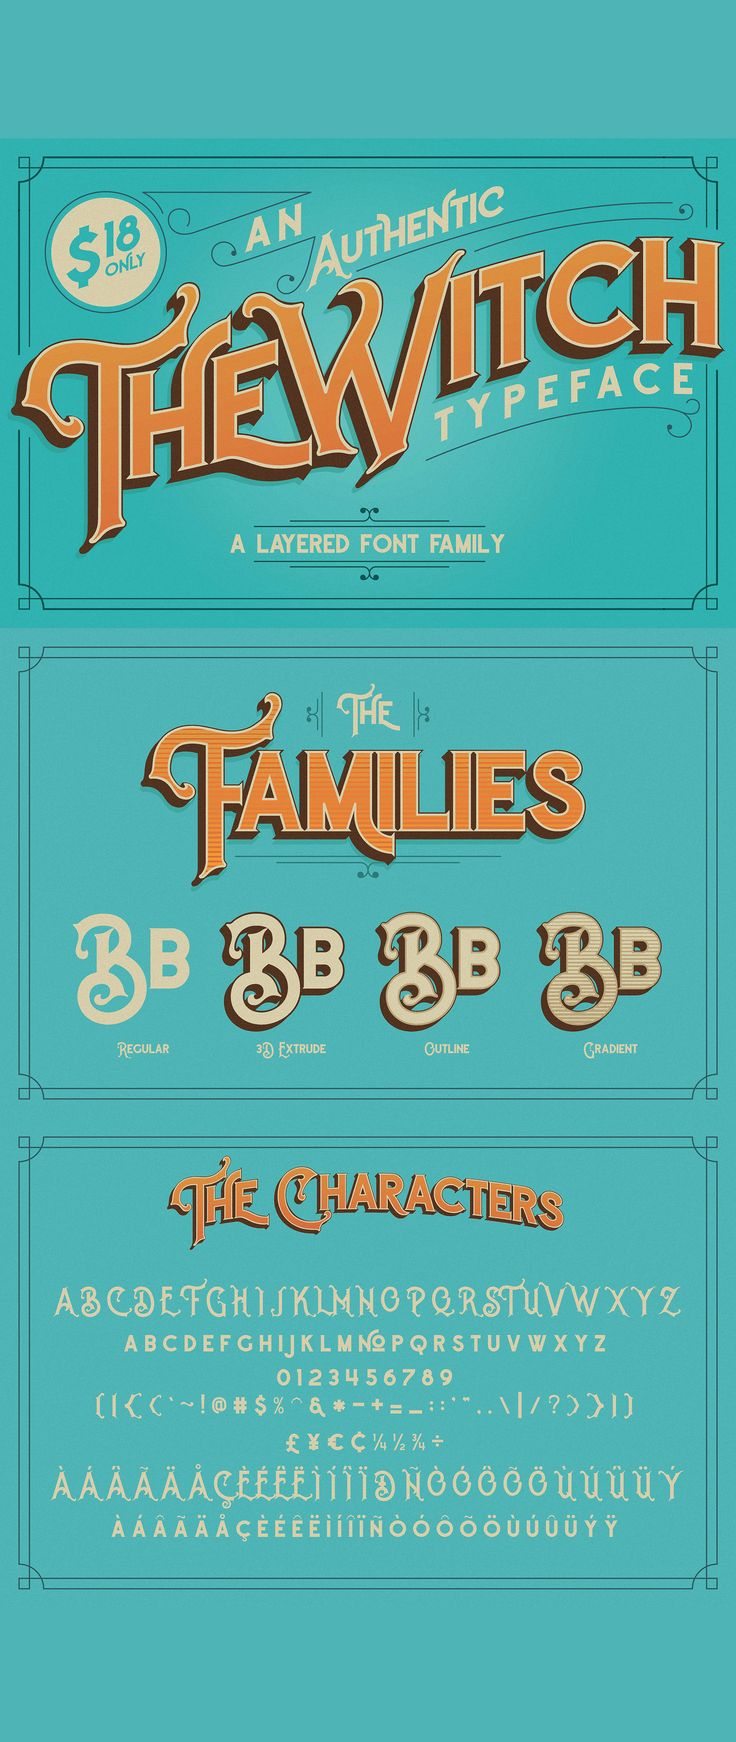 Inspired by the font of late 1800's, The Witch is a kind of layered font family with four styles. Regular, Outline, Gradient and 3D Extrude. Vintage atmosphere is very thick felt at this font. Circus, Carnival, coffee, cigarettes, and the barber is the objective of this font.  Fonts can also be used only with one style only. It would be very interesting if it is used for your design themed vintage, retro, and others.  Enjoy! Happy Designing!